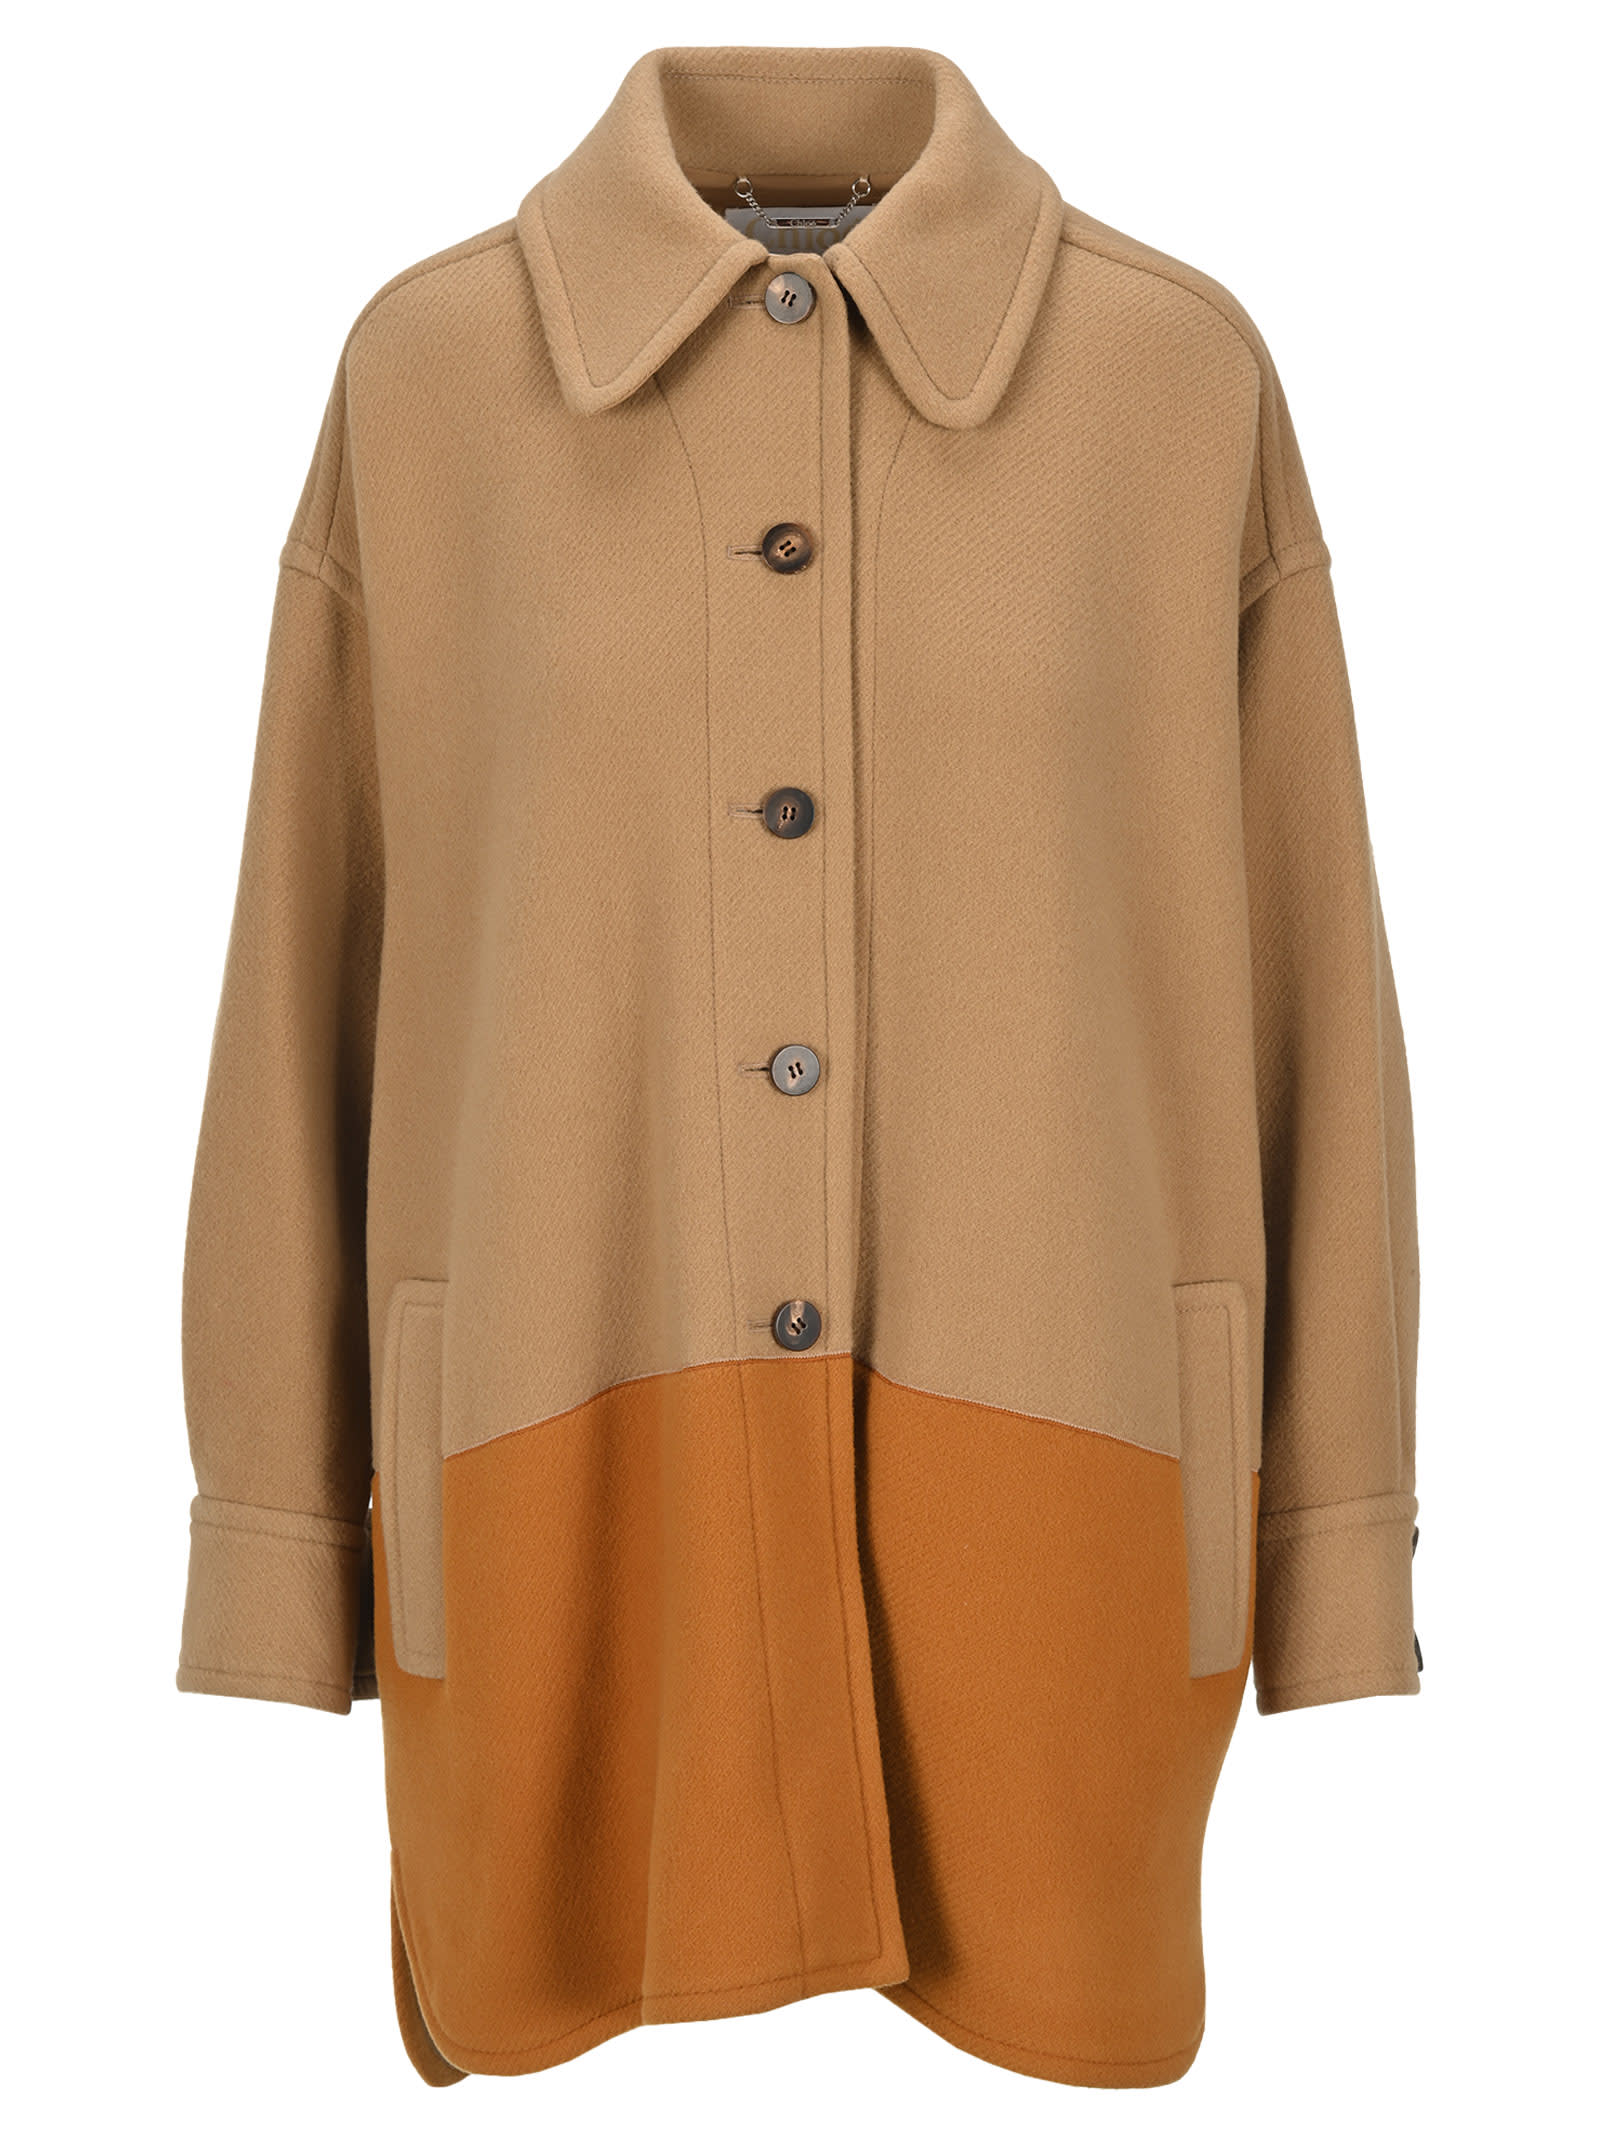 Warn Brown Wool Blend Two Tone Single Breasted Coat By Chloé. Featuring: - Classic Collar; - Front Button Fastening; - Long Sleeves; - Dropped Shoulders; - Front Flap Pockets; - Large Buttoned Cuffs; - Relaxed Fit; - High Low Hem. Composition: 80% WOOL, 20% POLYAMIDE - LINING:, 100% COTTON